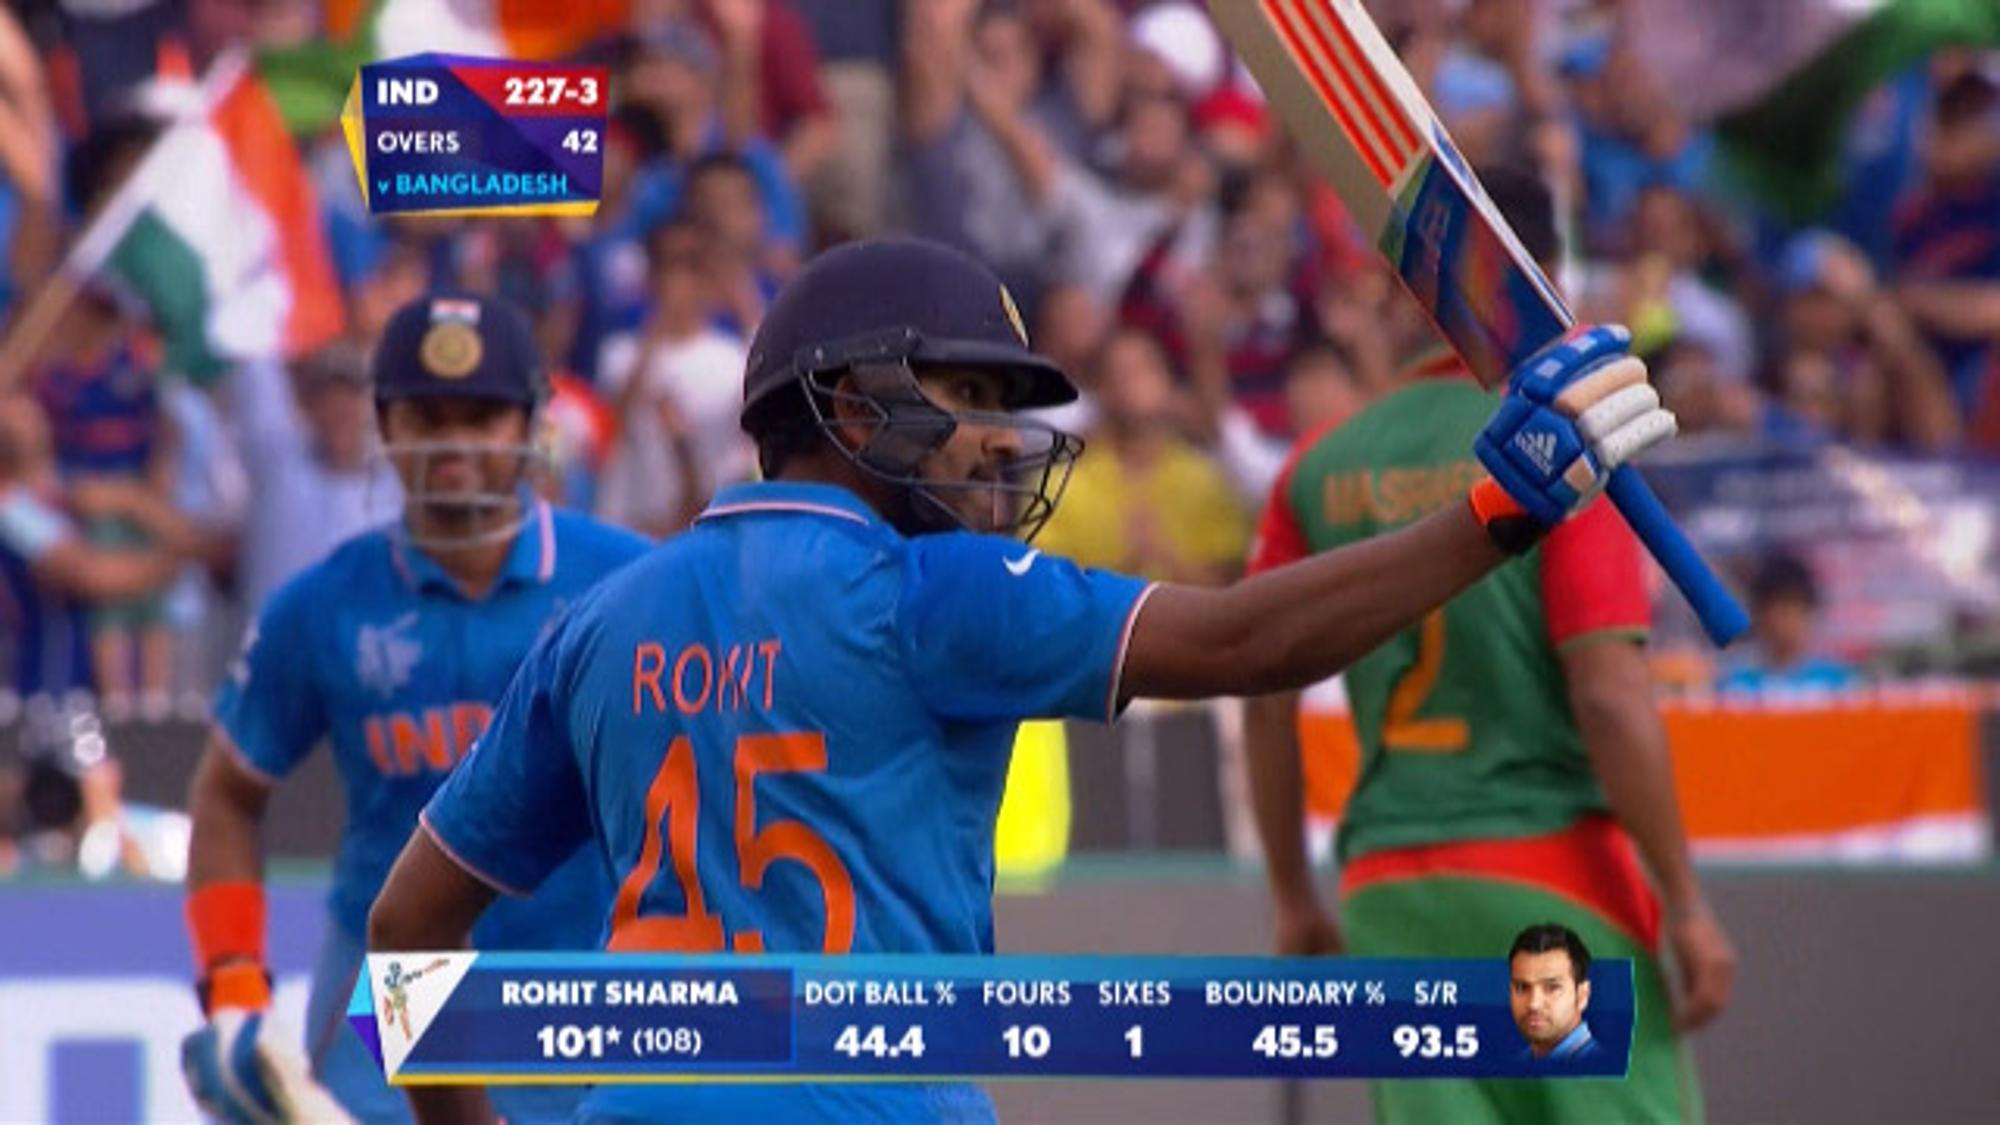 CWC15 IND vs BAN QF - India innings highlights